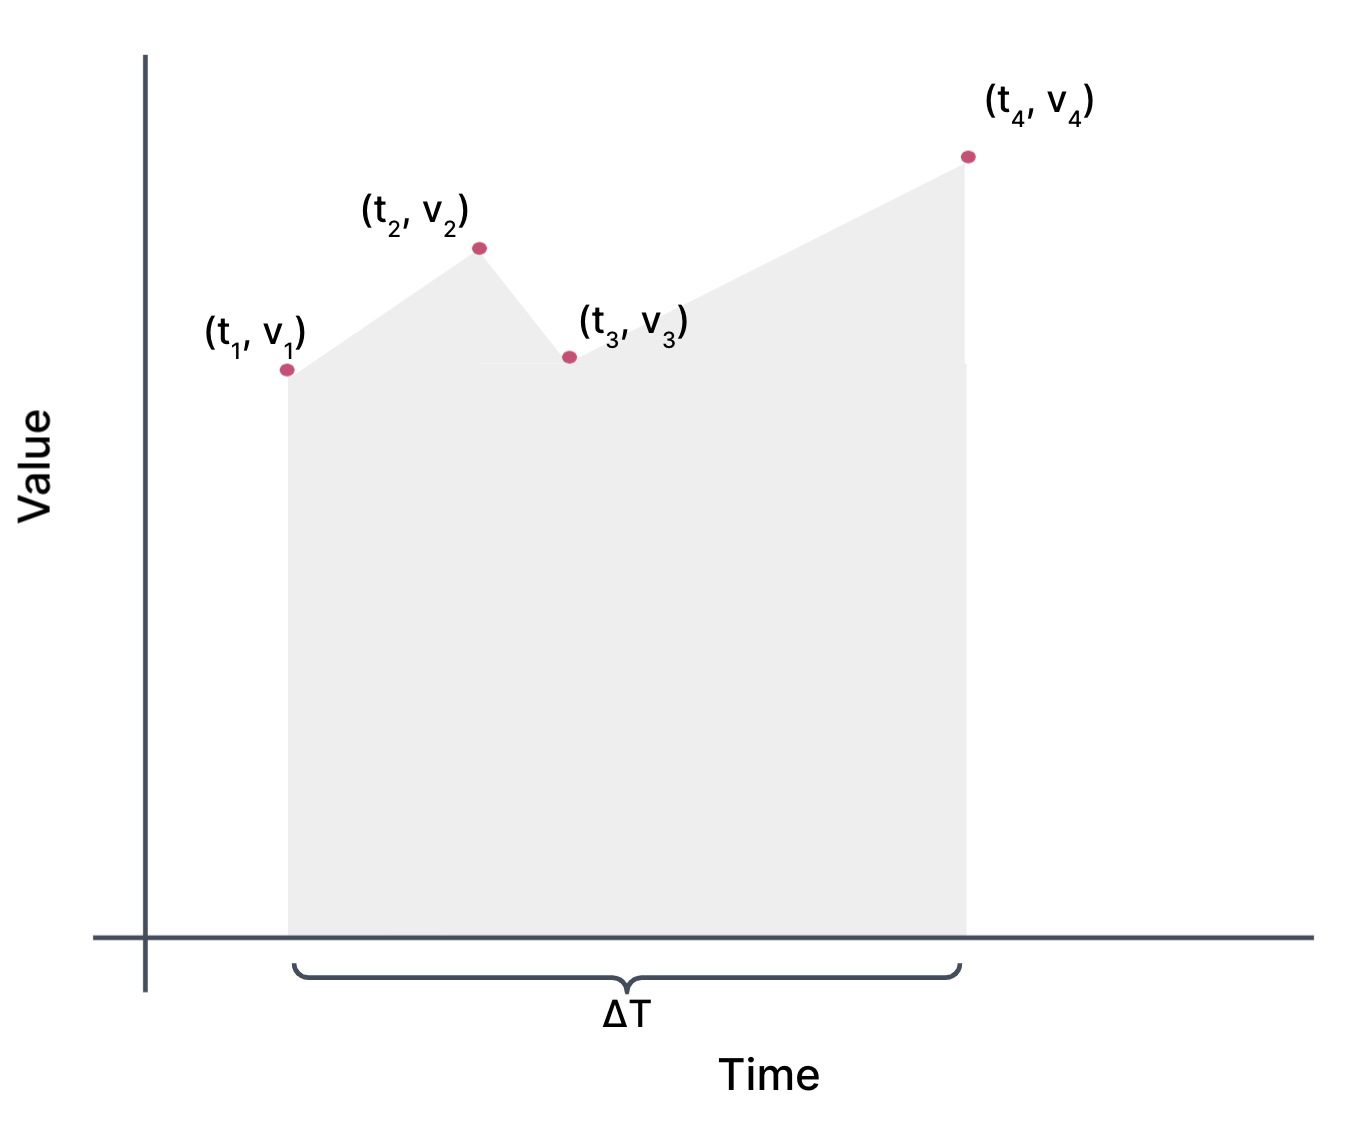 The same graph as above but with the area under the curve shaded in gray. The area under the curve is drawn by drawing a line through each pair of points and then shading down to the x-axis. The total time spanned by the points from t 1 to t 4 is denoted as Delta T.